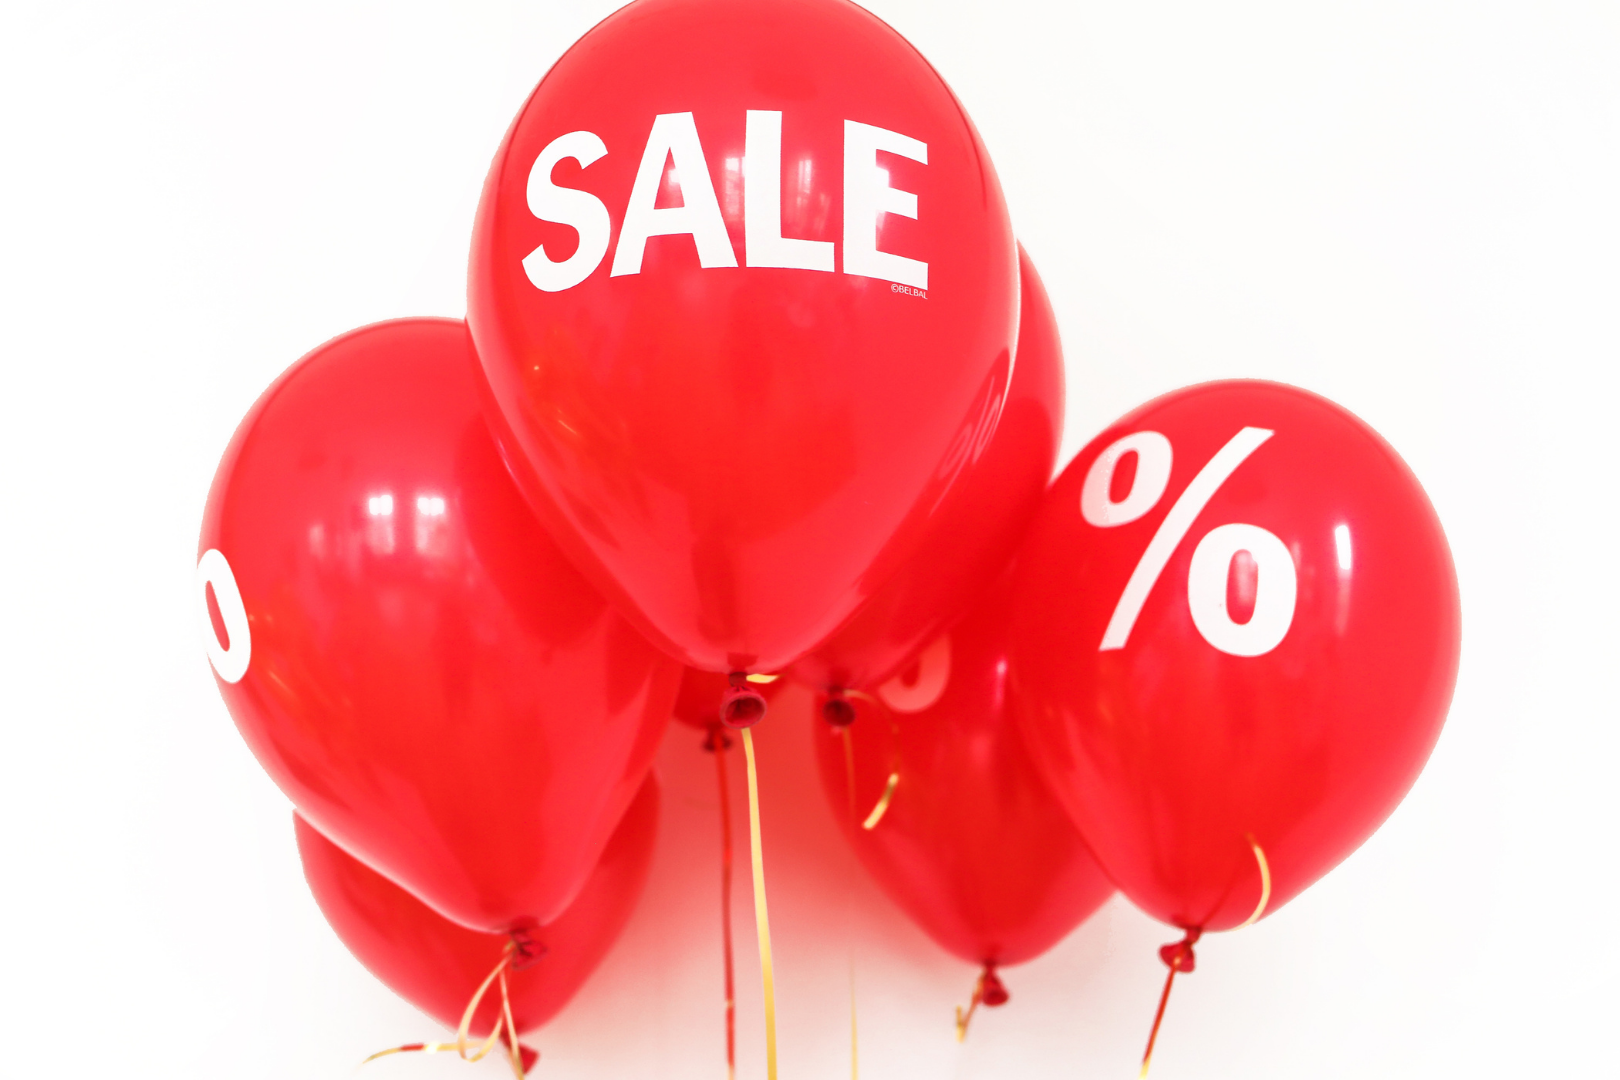 Deals, Promotions, and Advertising